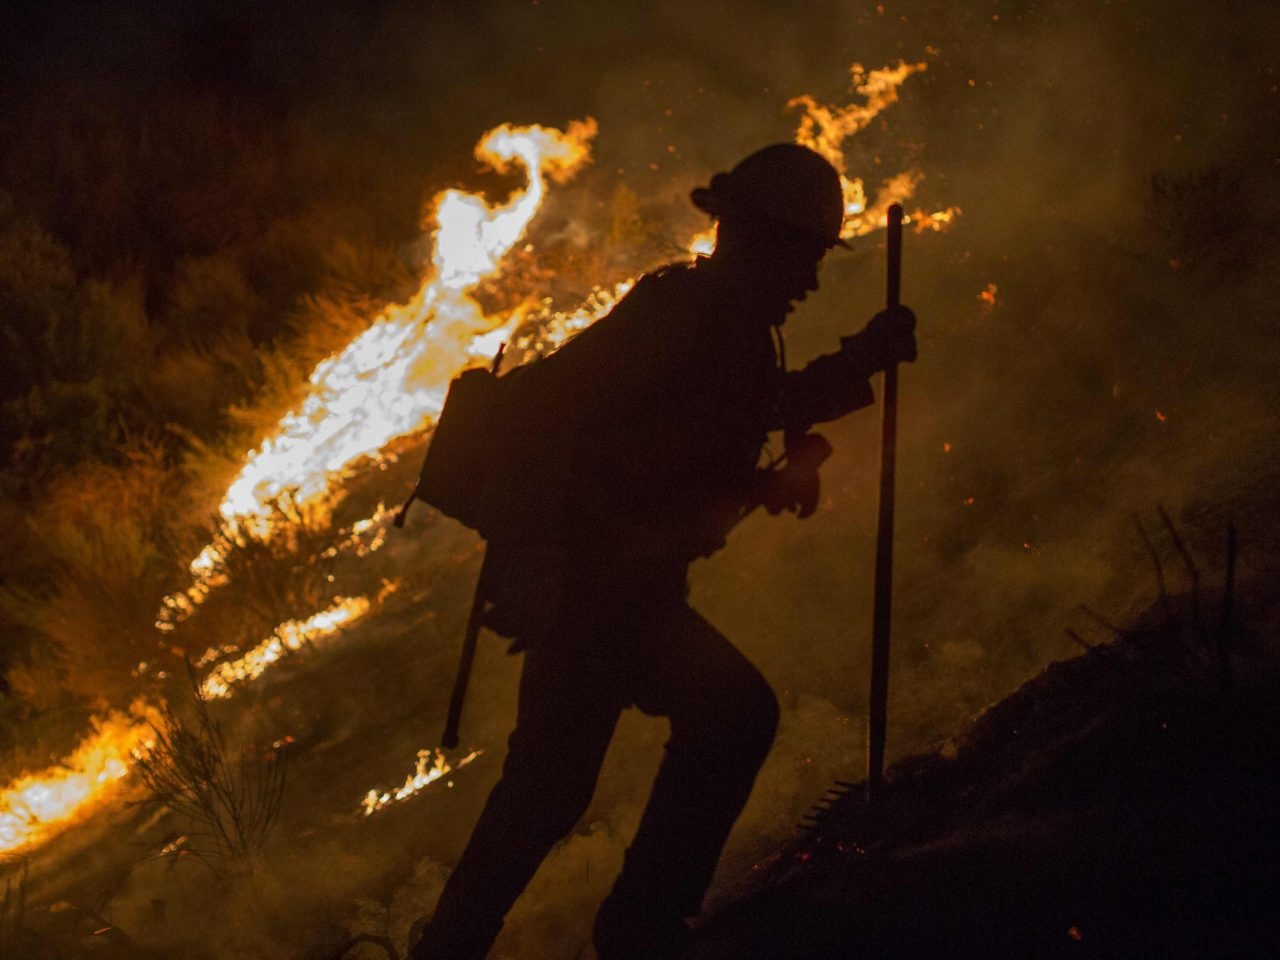 La Tuna Fire: Over 1,000 Firefighters Battling Largest in ...